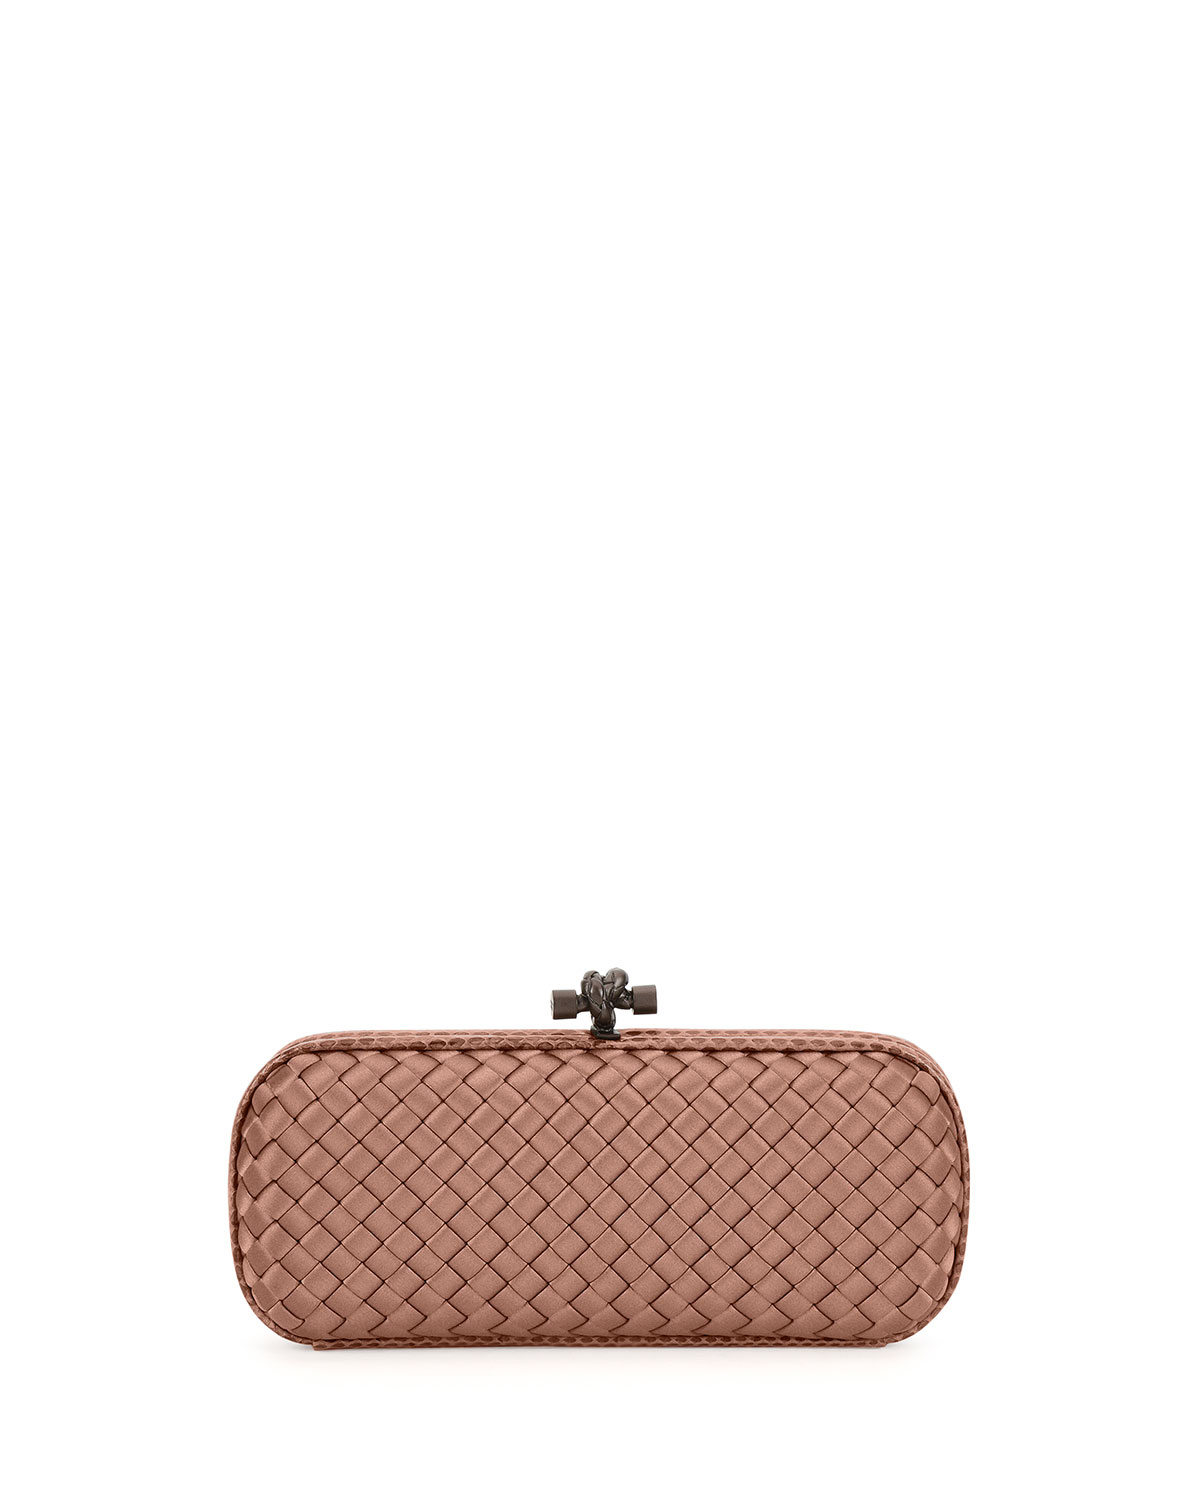 51de7db49363 Bottega Veneta Stretch Knot Clutch